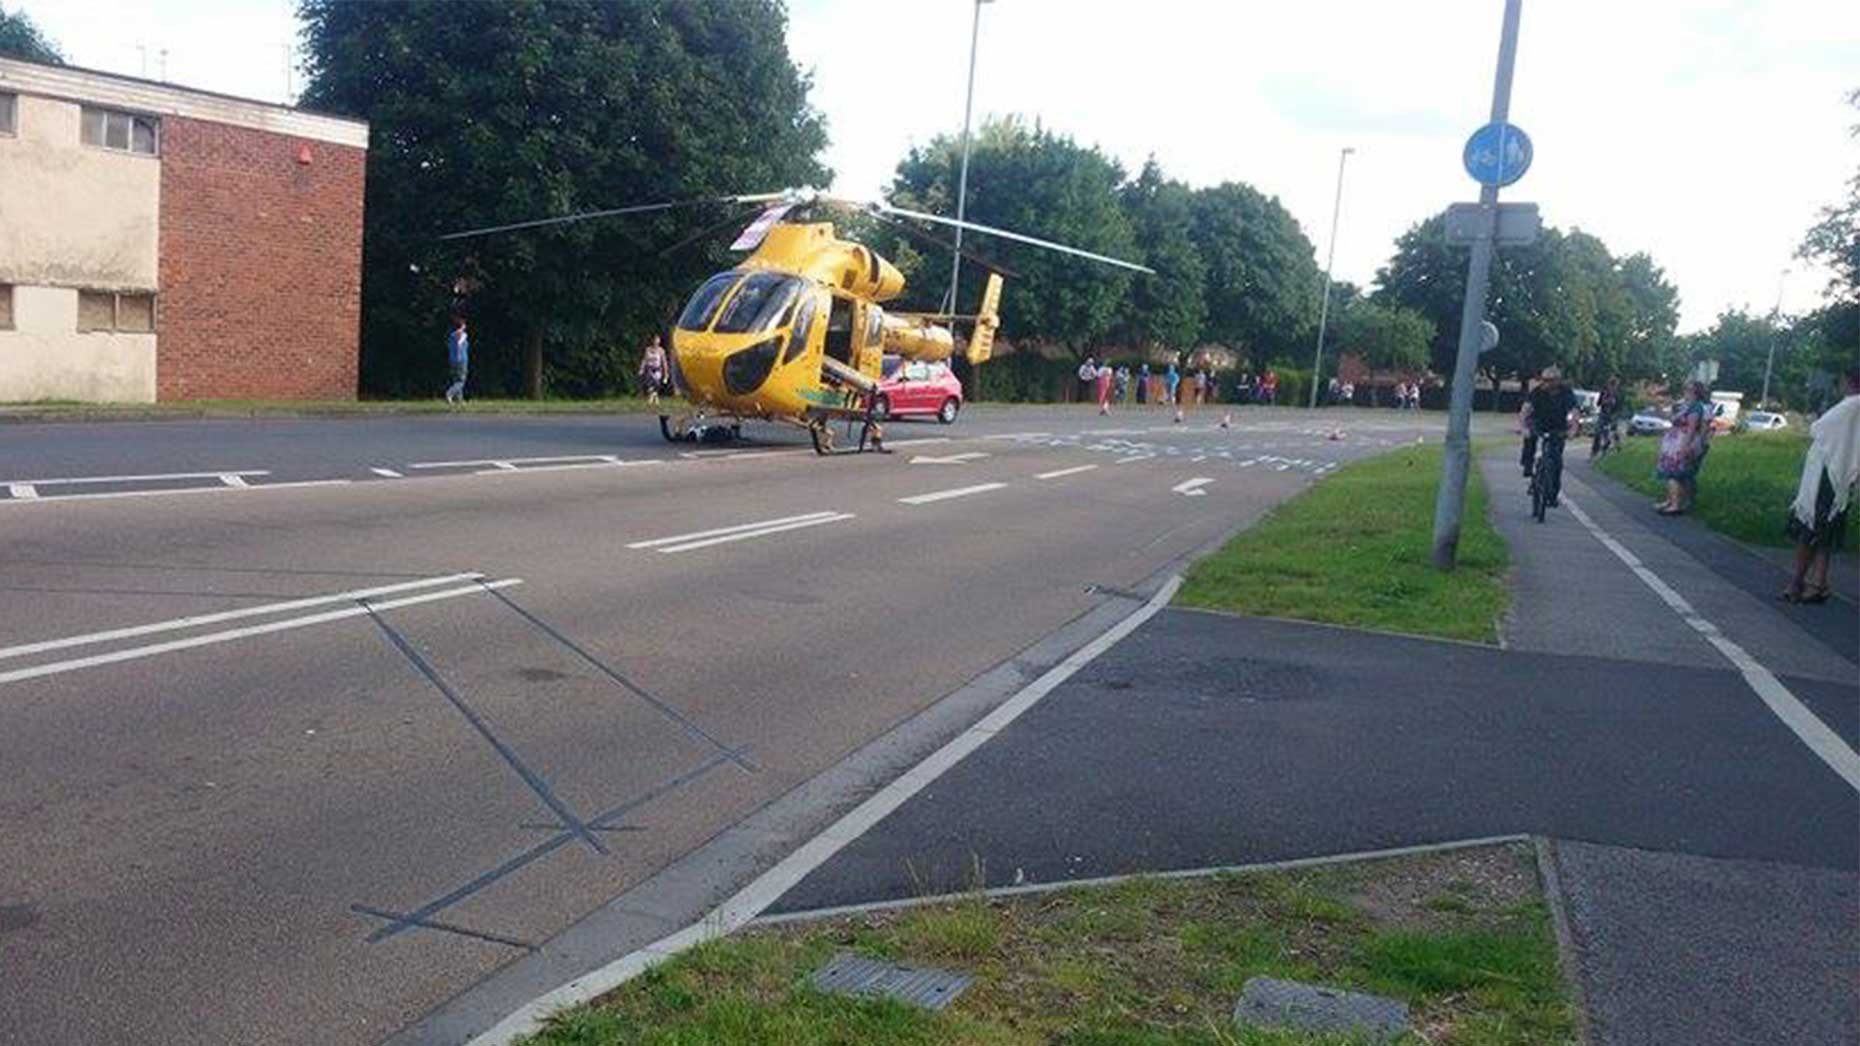 The ambucopter landed on the road to pick up the injured biker. Photo: Rex Helley